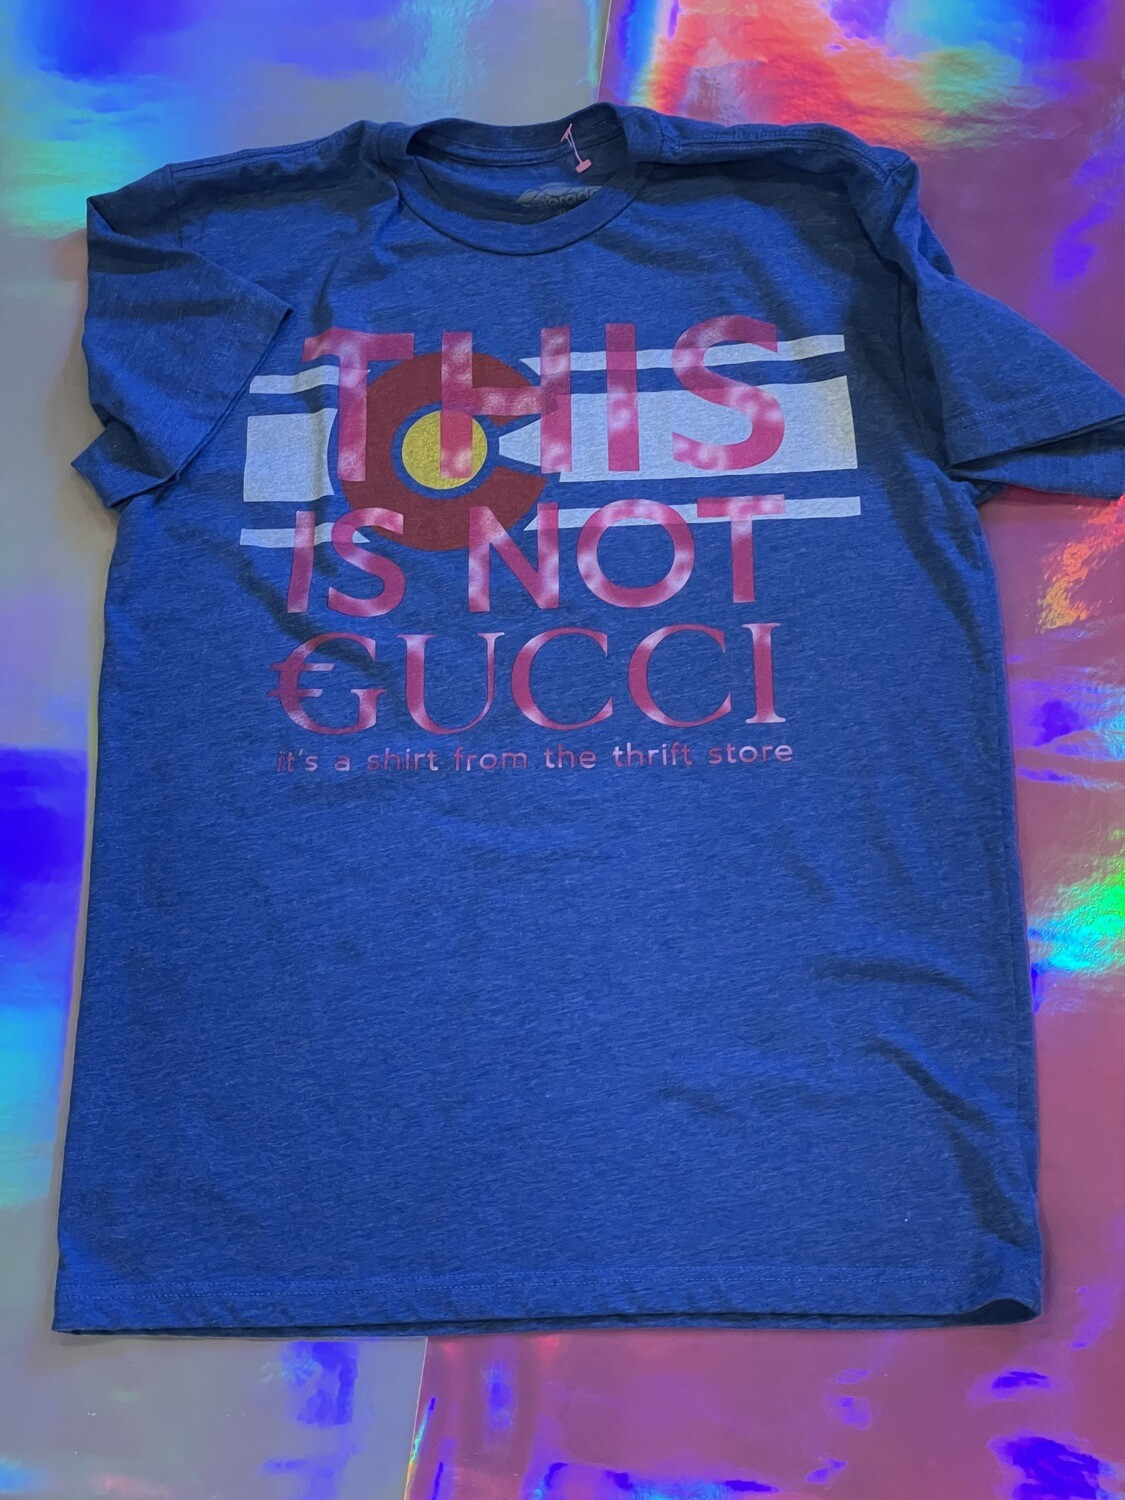 This Is Not €ucci - NFC clothing - Blue CO Shirt